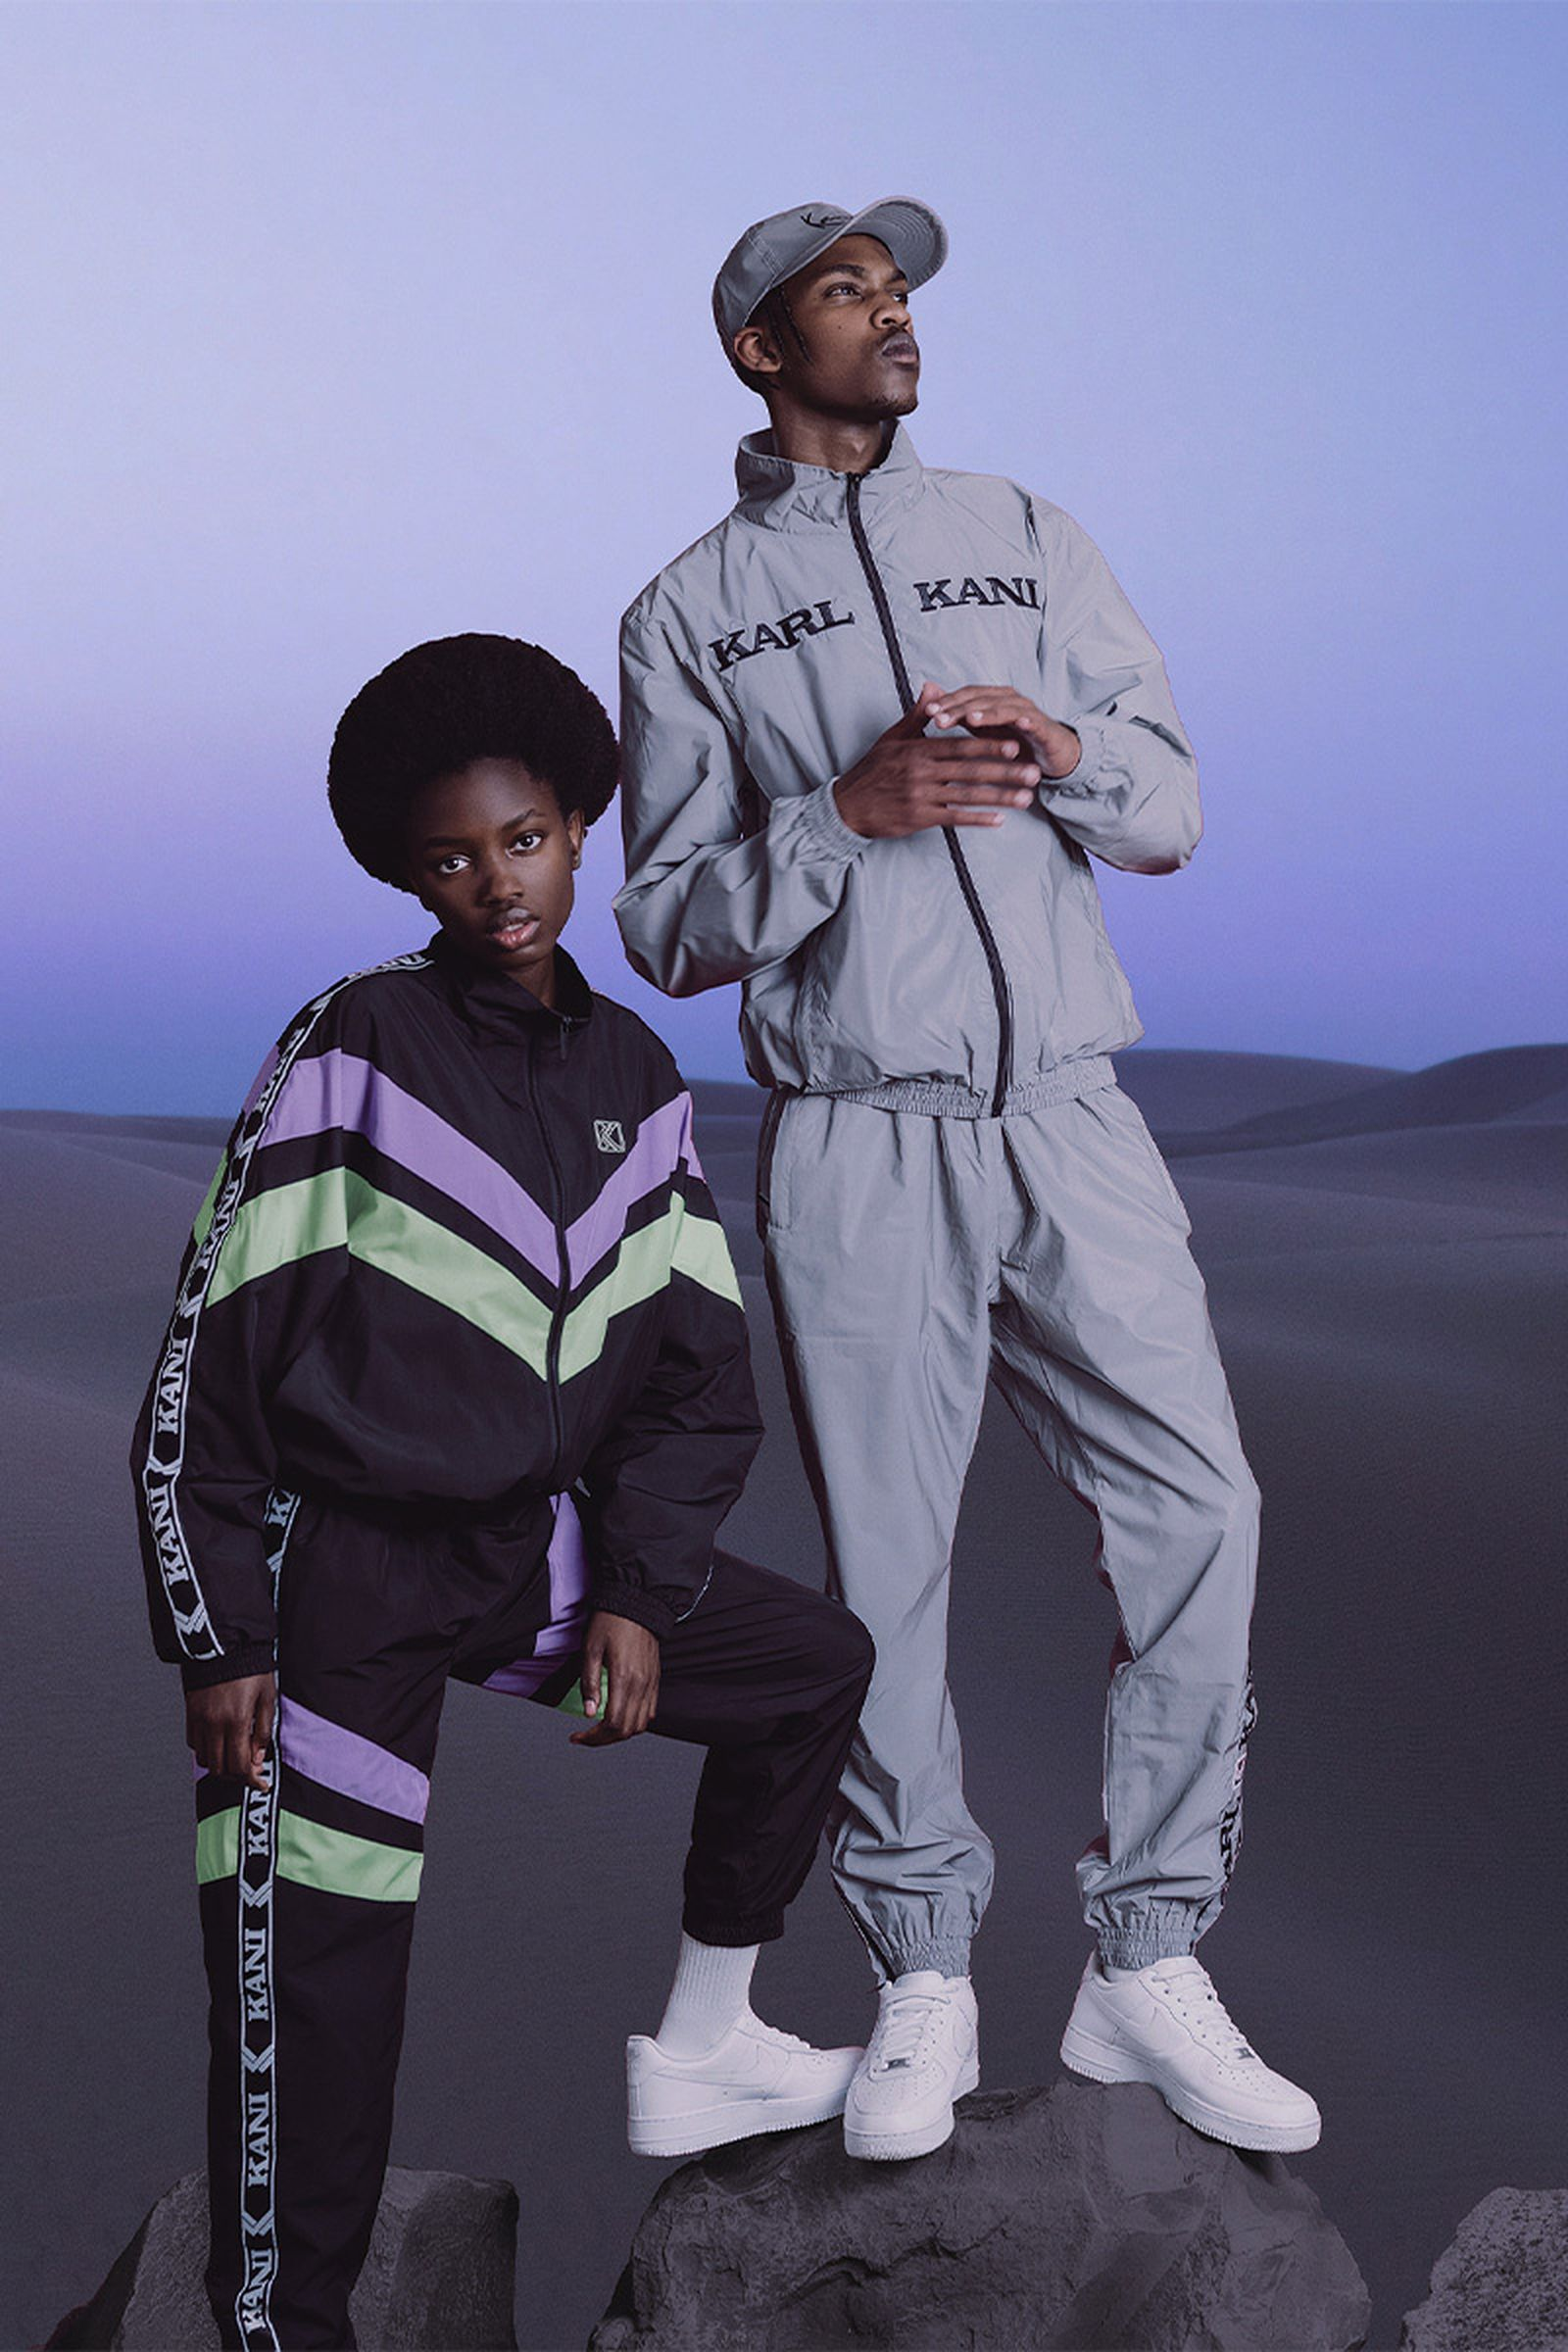 karl-kani-aw20-new-collection-release-12